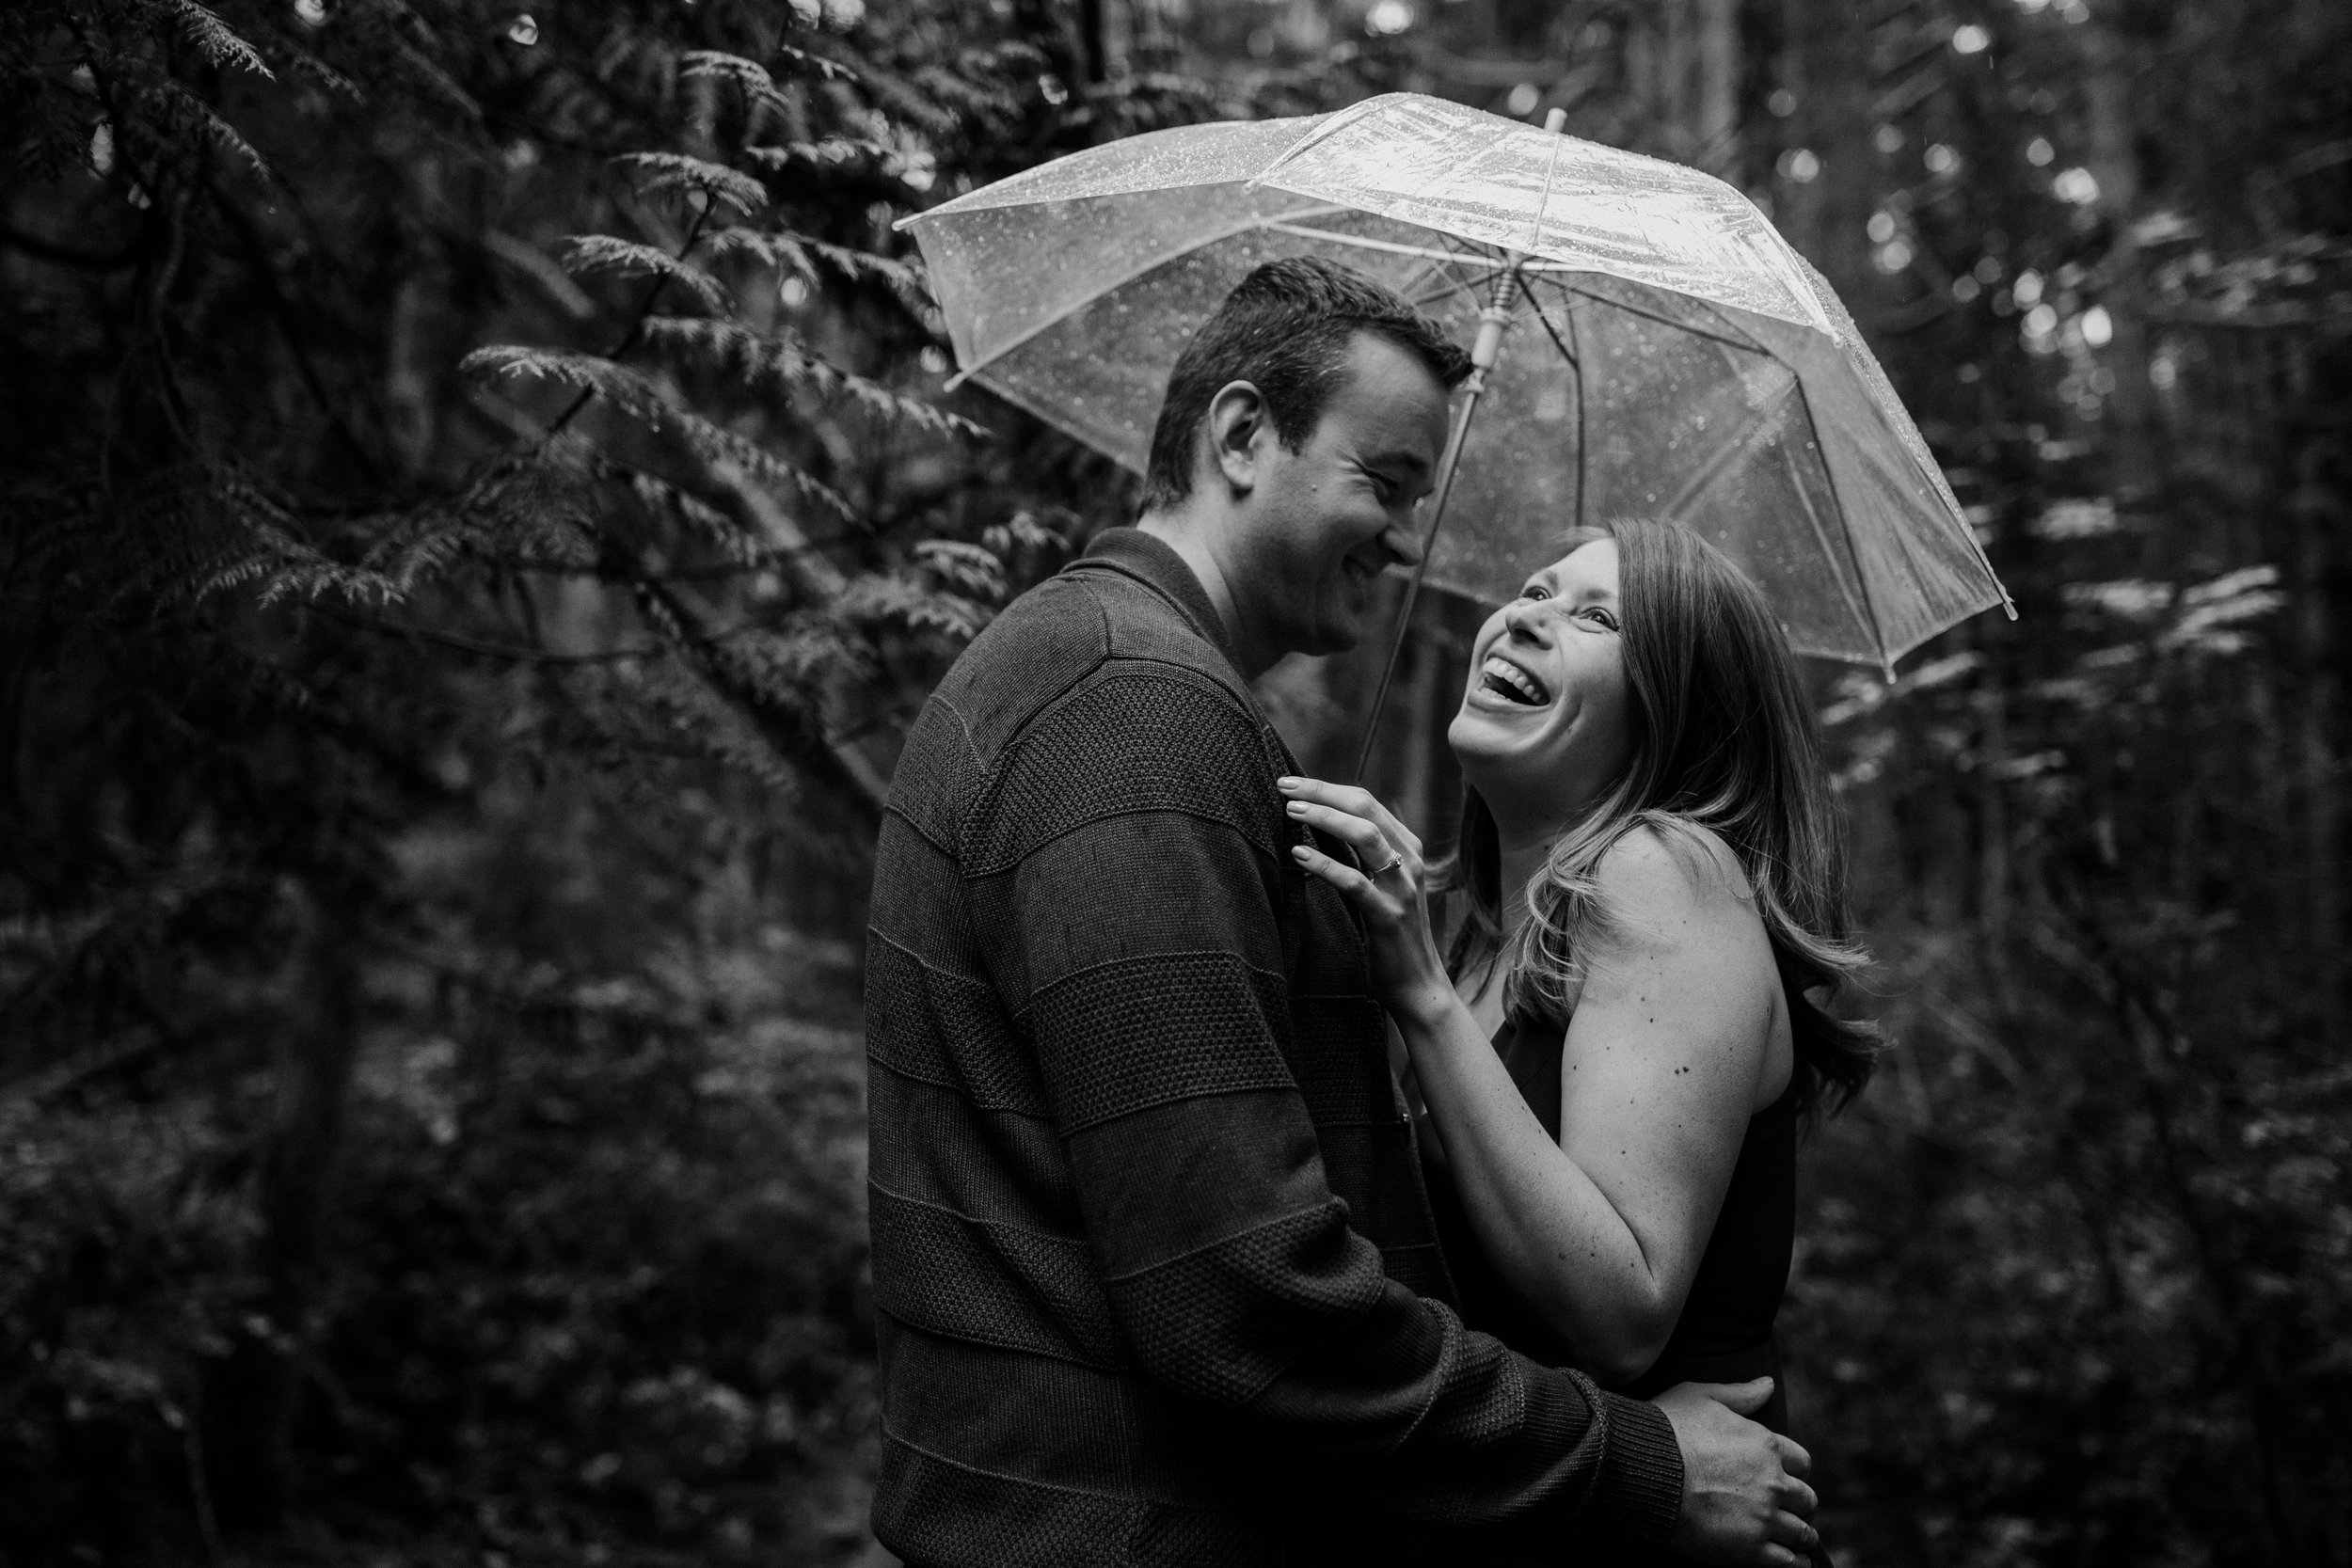 SUNSHINE COAST FOREST & BEACH ENGAGEMENT PHOTOS — Ashley & Antoine — JENNIFER PICARD PHOTOGRAPHY192.JPG